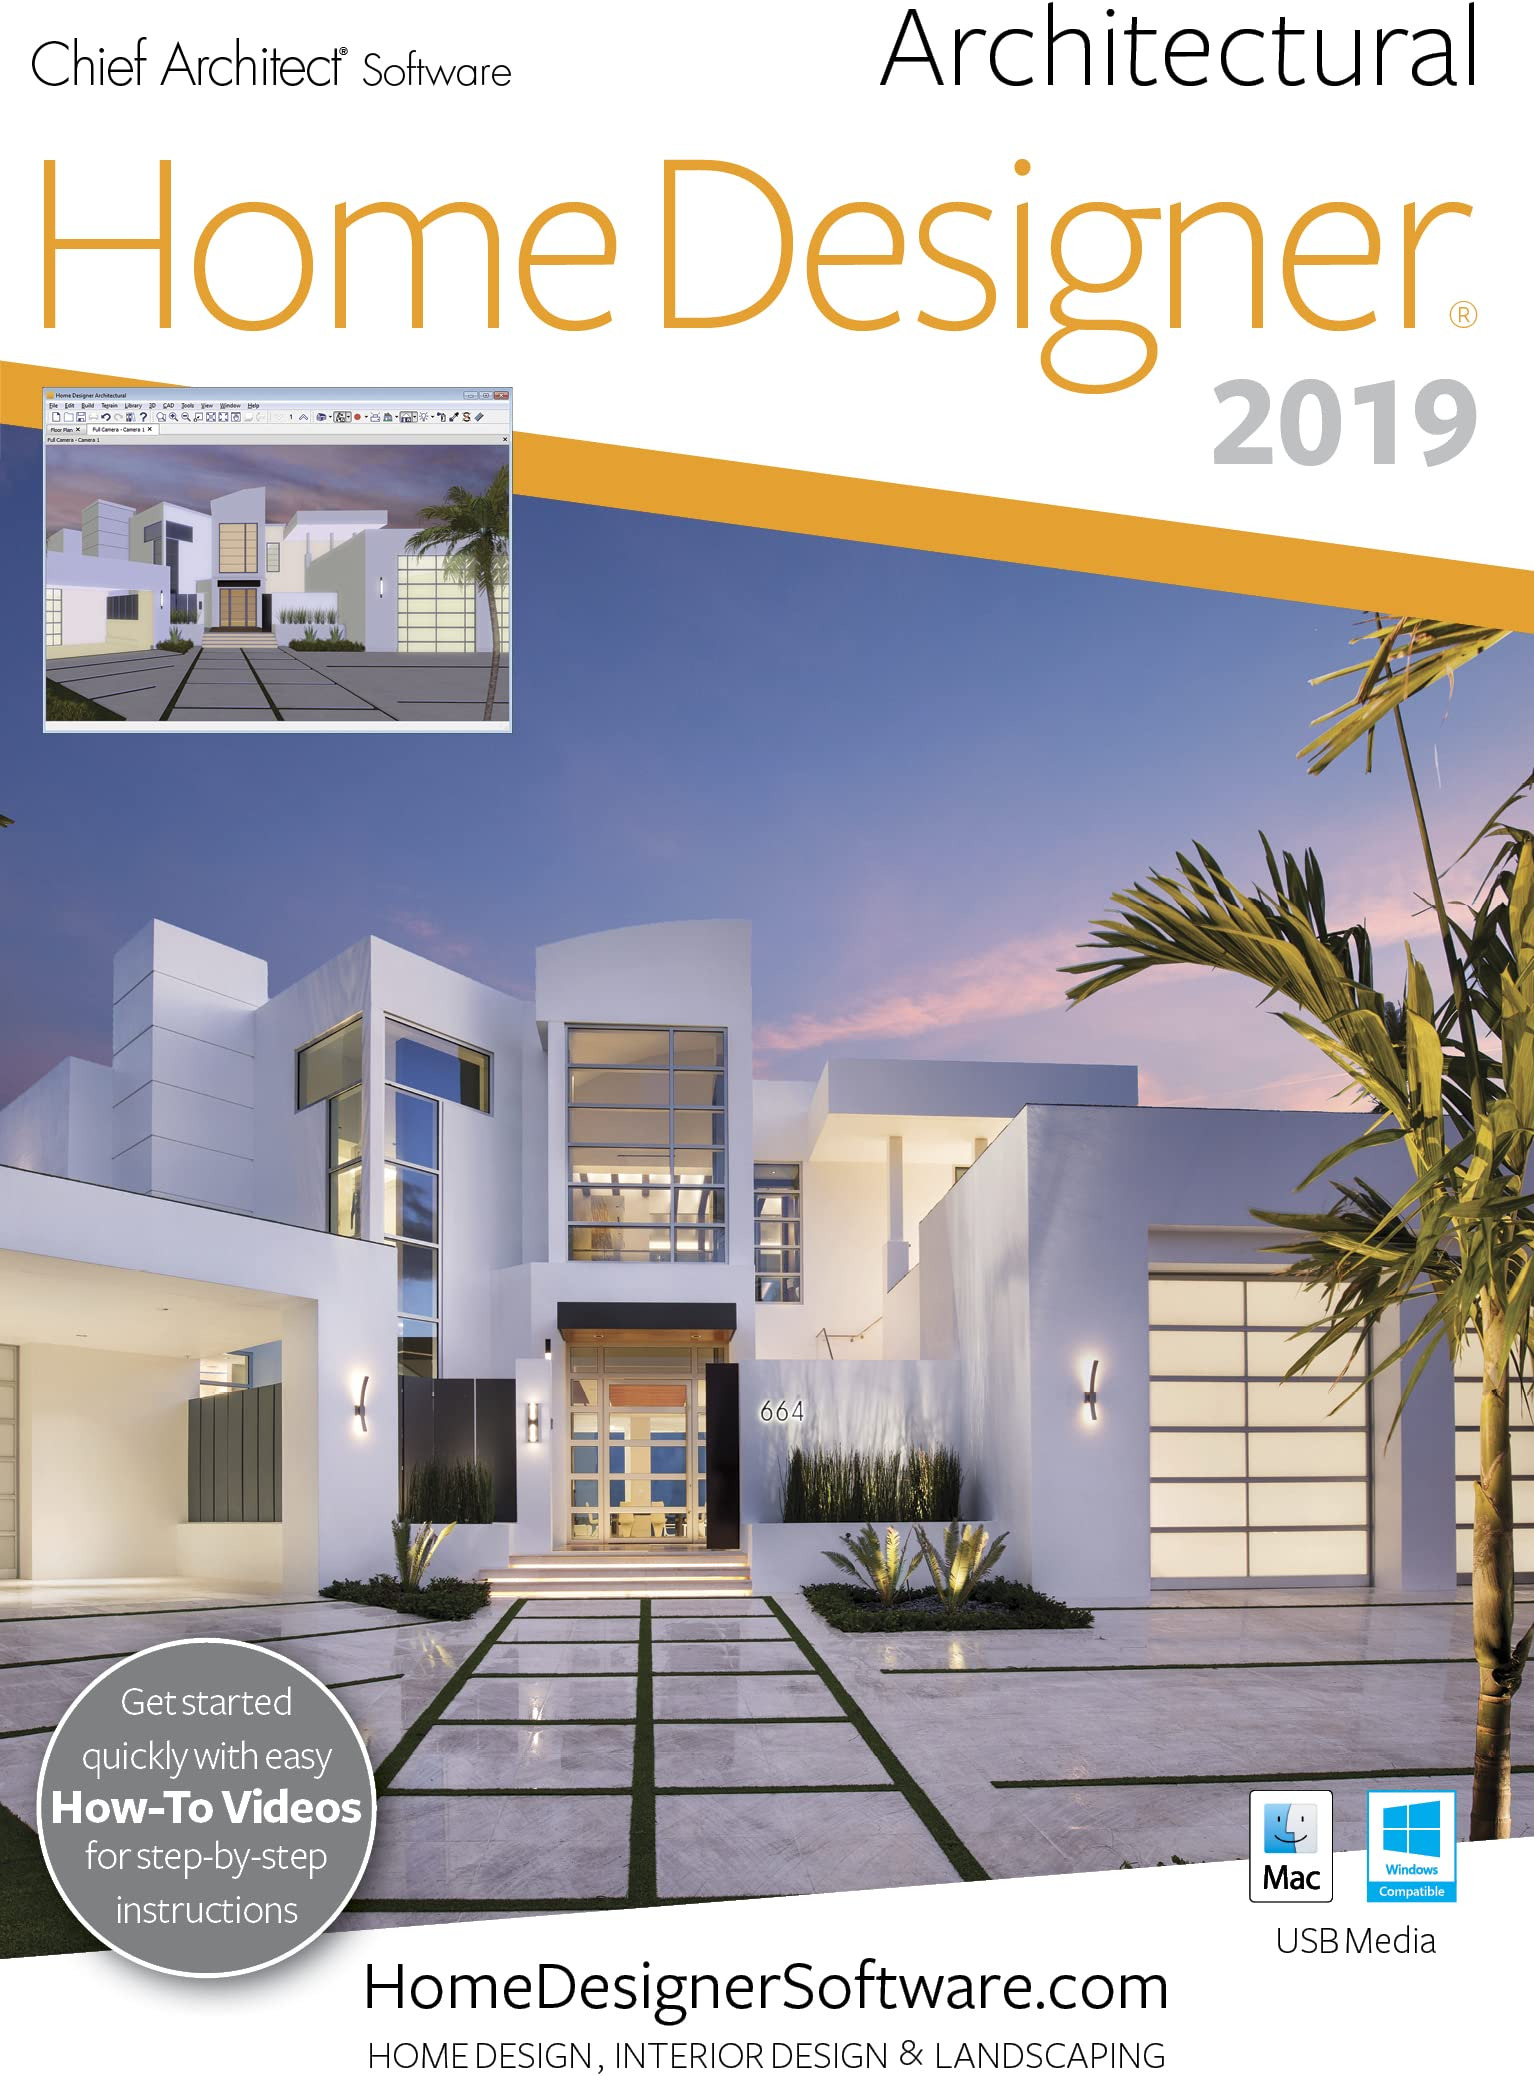 House Planning software Mac Lovely Home Designer Architectural 2019 Mac Download [download]